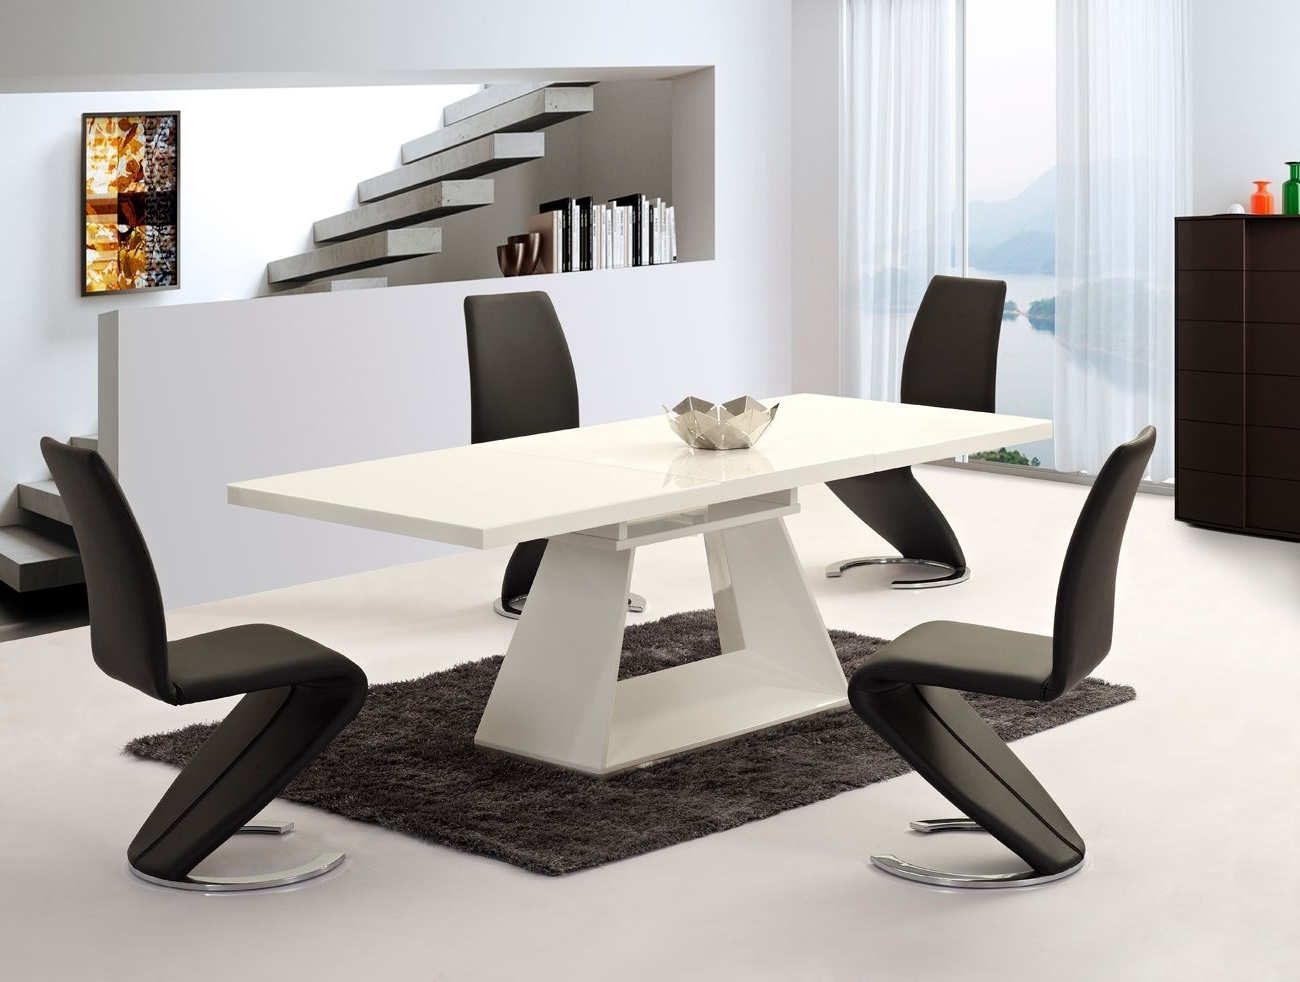 25 Hi Gloss Dining Table Sets, Modern Round White High Gloss Clear intended for 2017 Hi Gloss Dining Tables